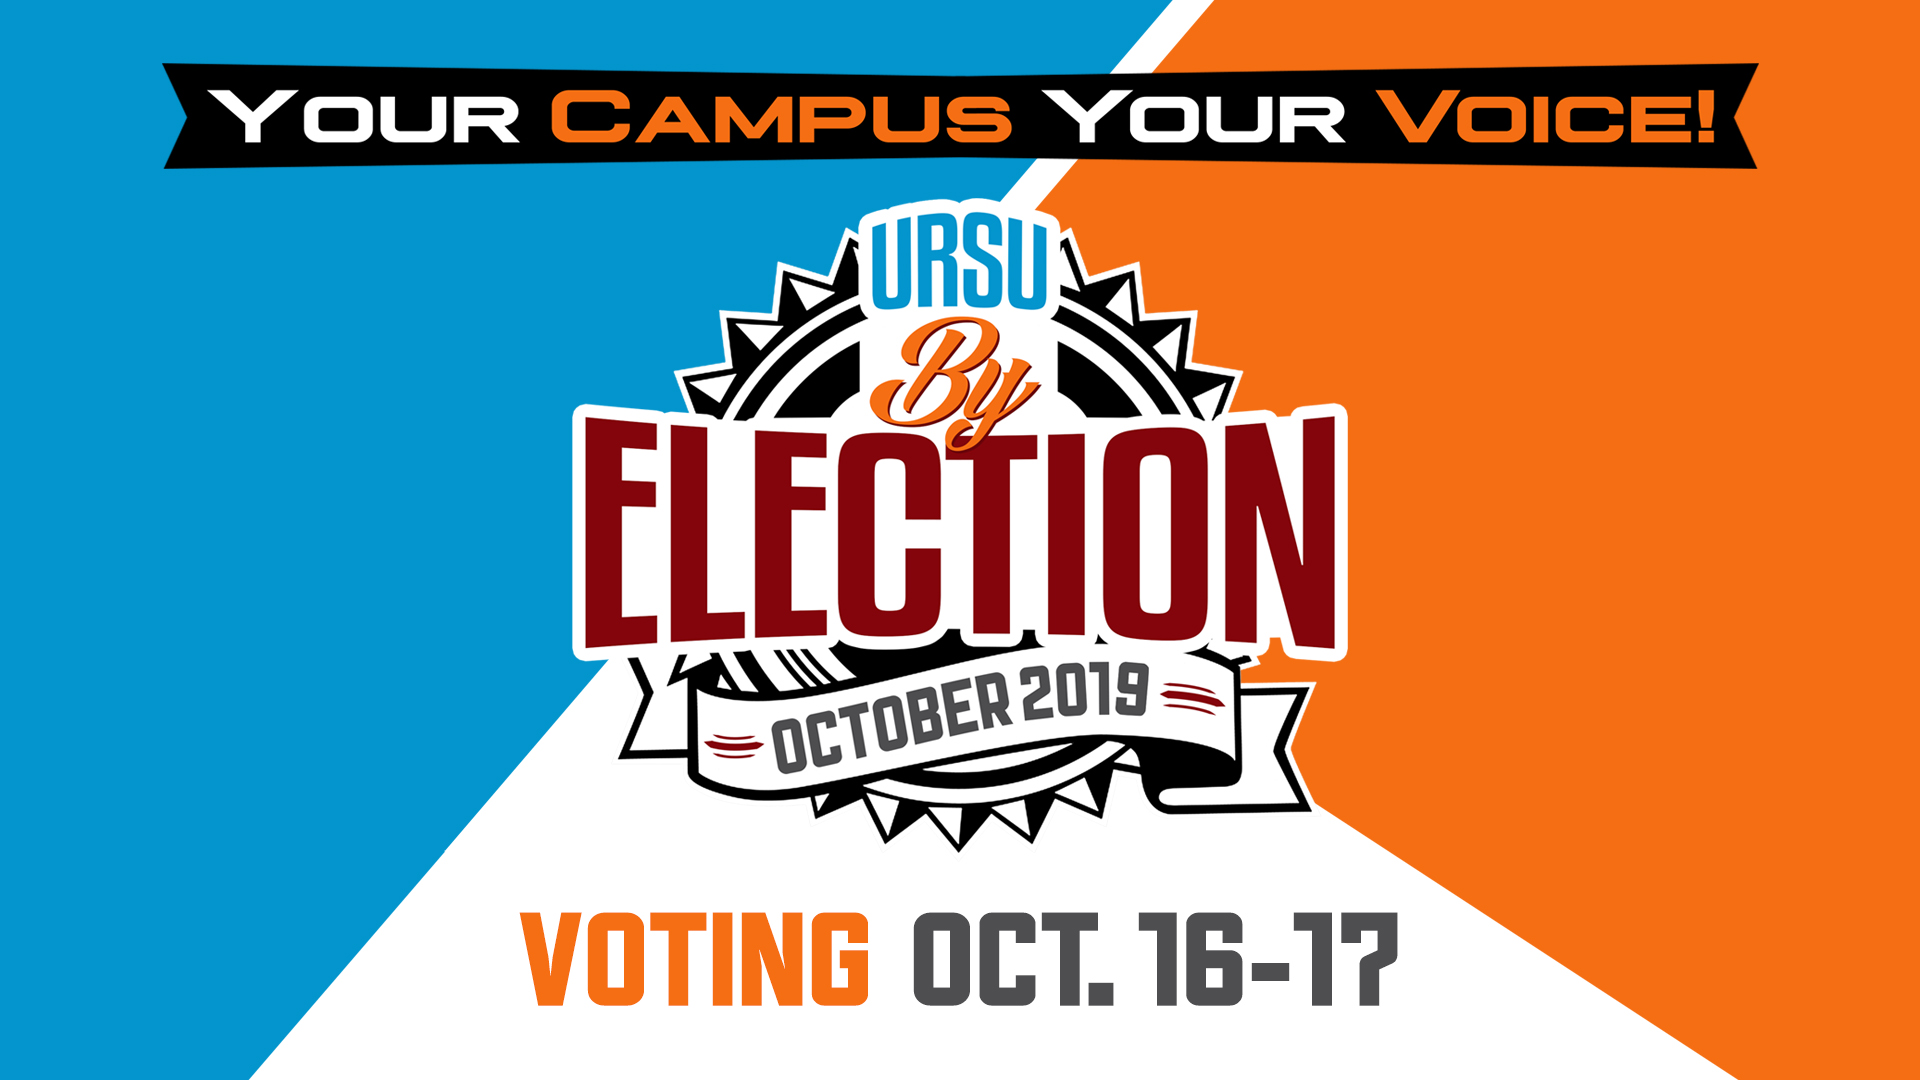 URSU By Election Results Released